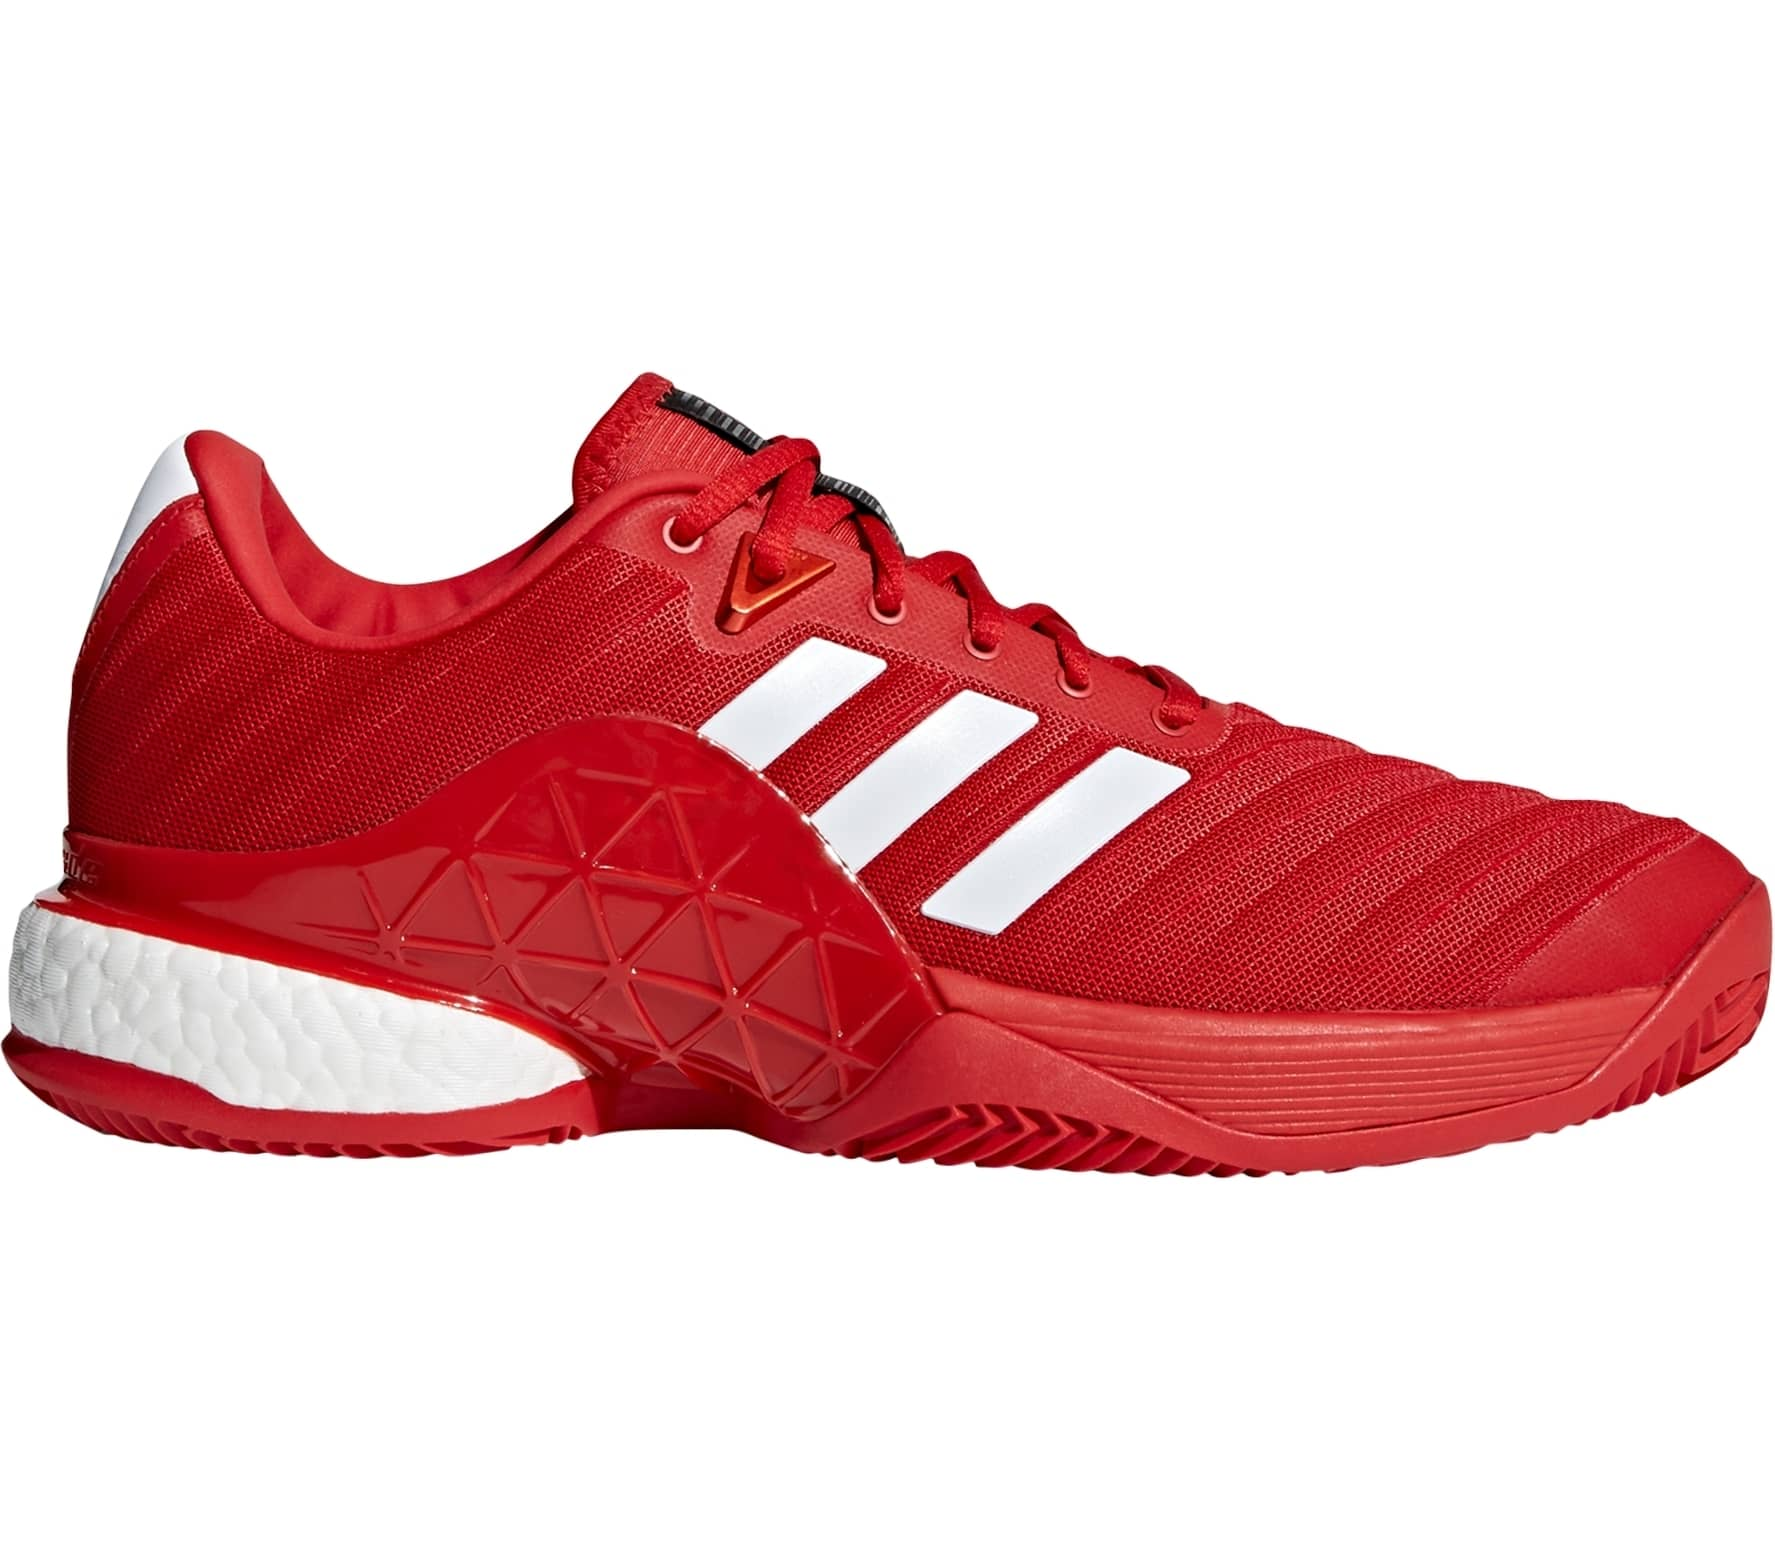 9f91e901f68 Adidas - Barricade Boost clay men s tennis shoes (red black) - buy ...